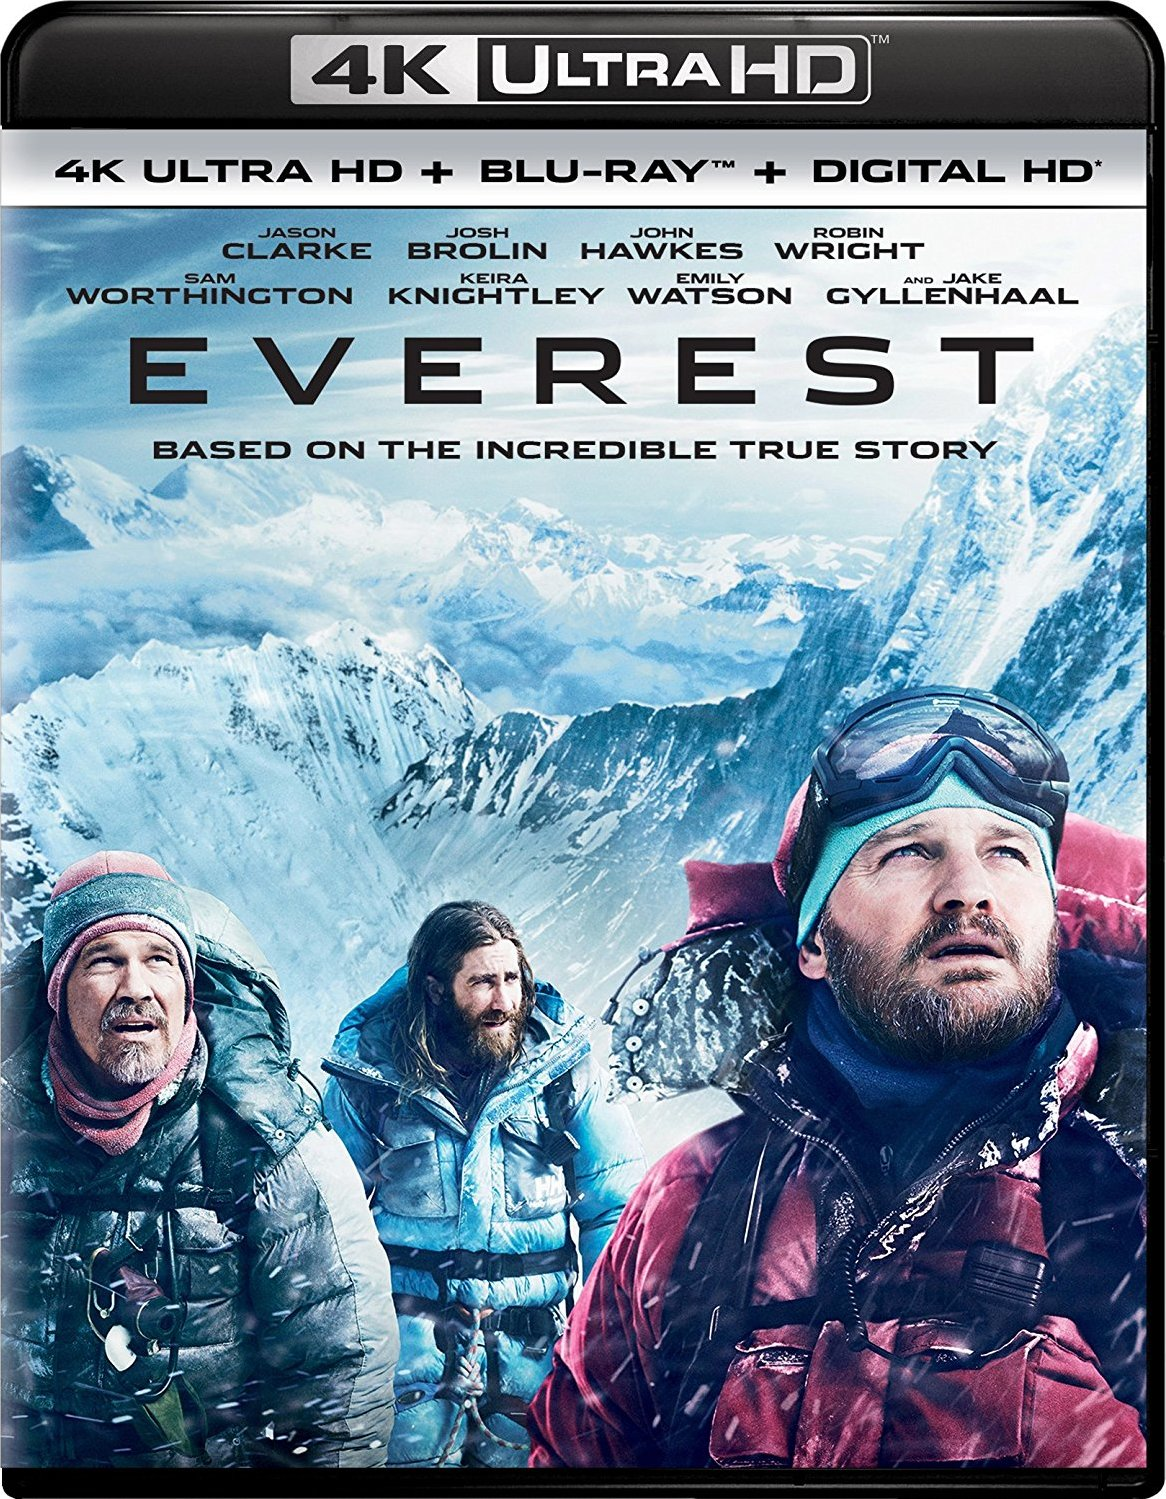 Everest 4K (2015) 4K Ultra HD Blu-ray